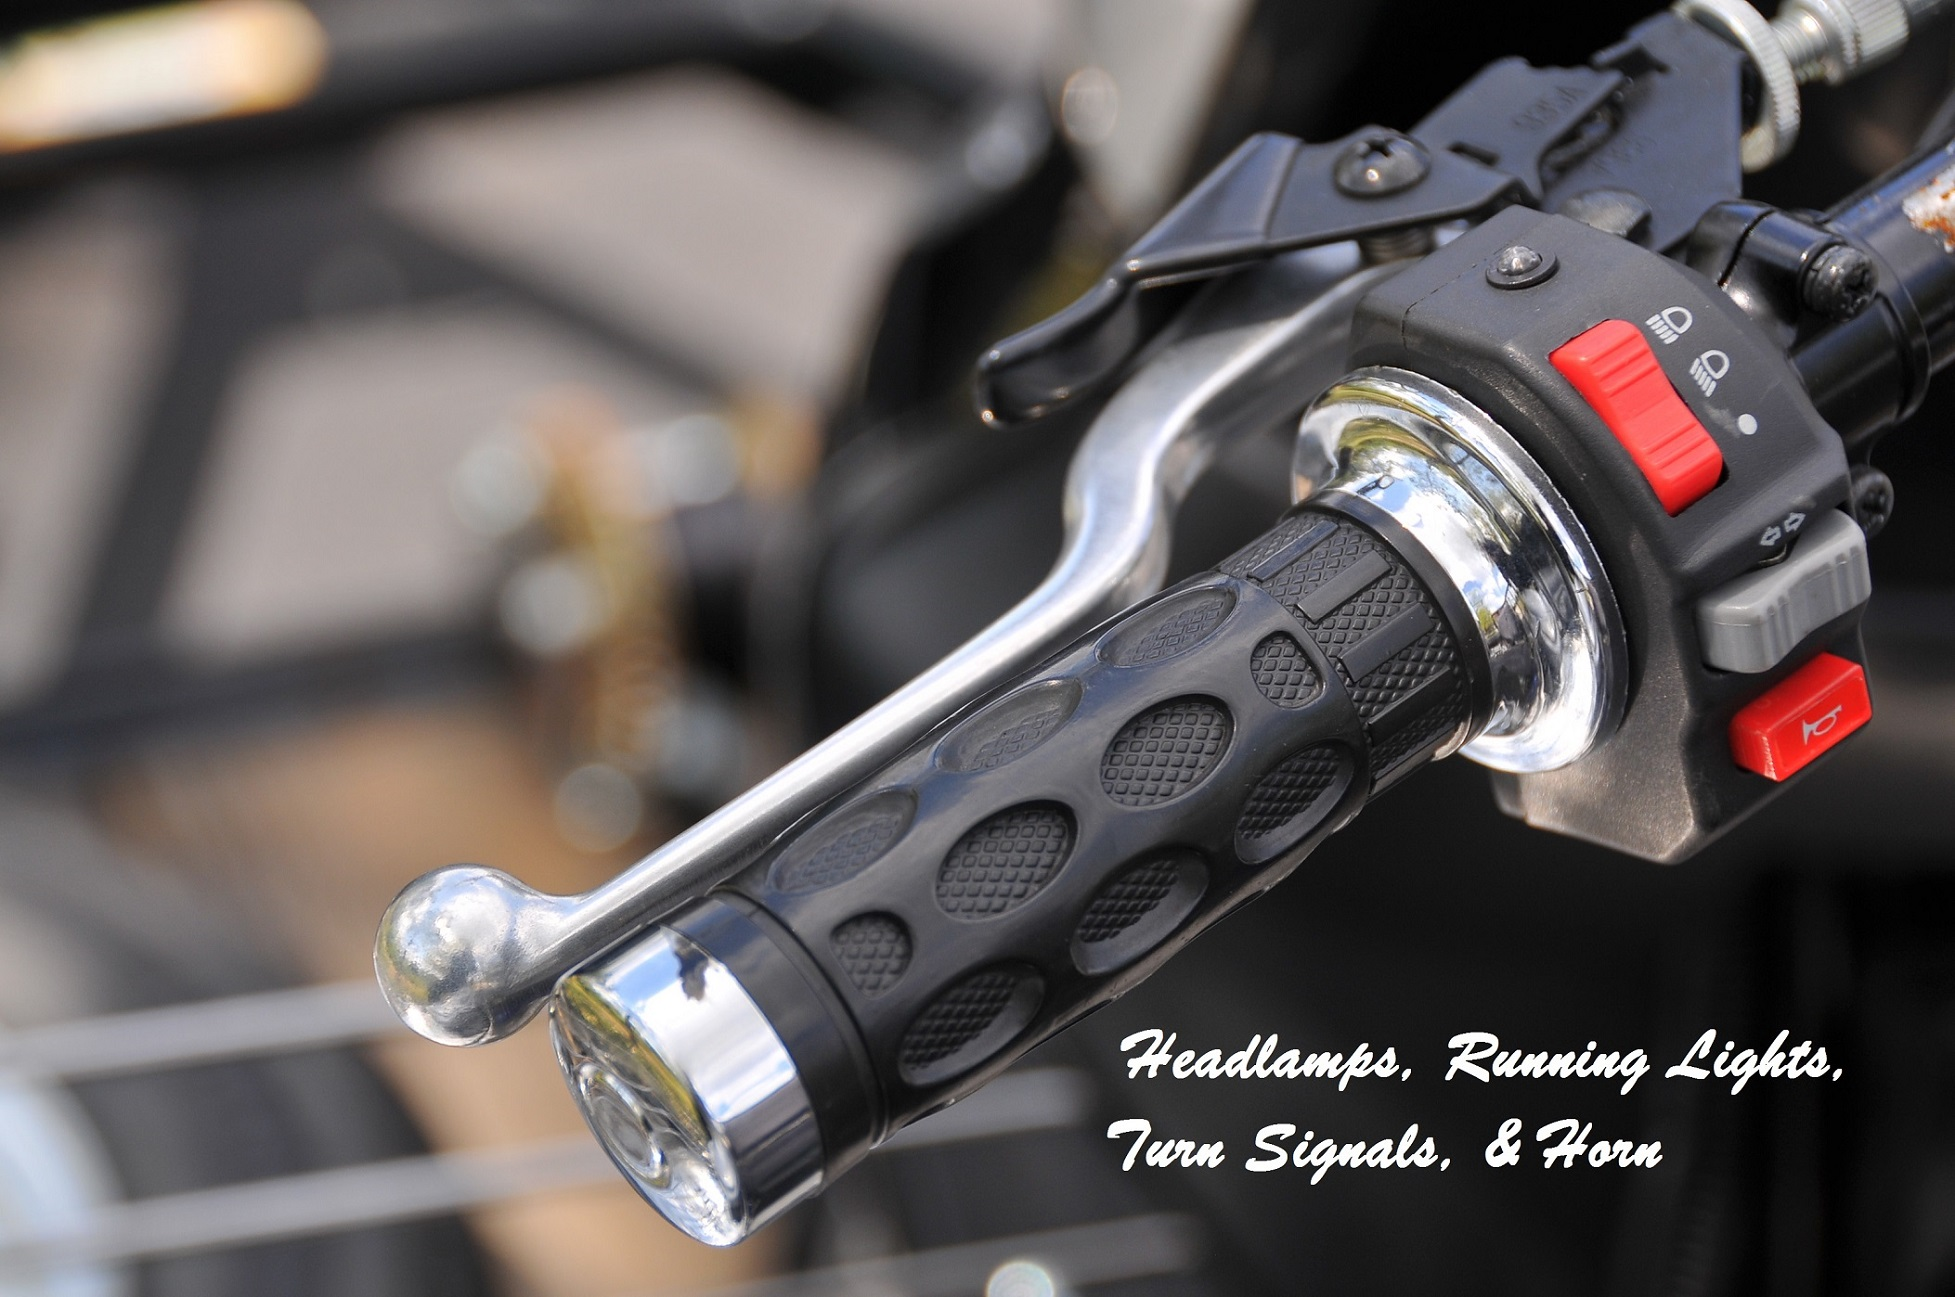 LifeTrike throttle